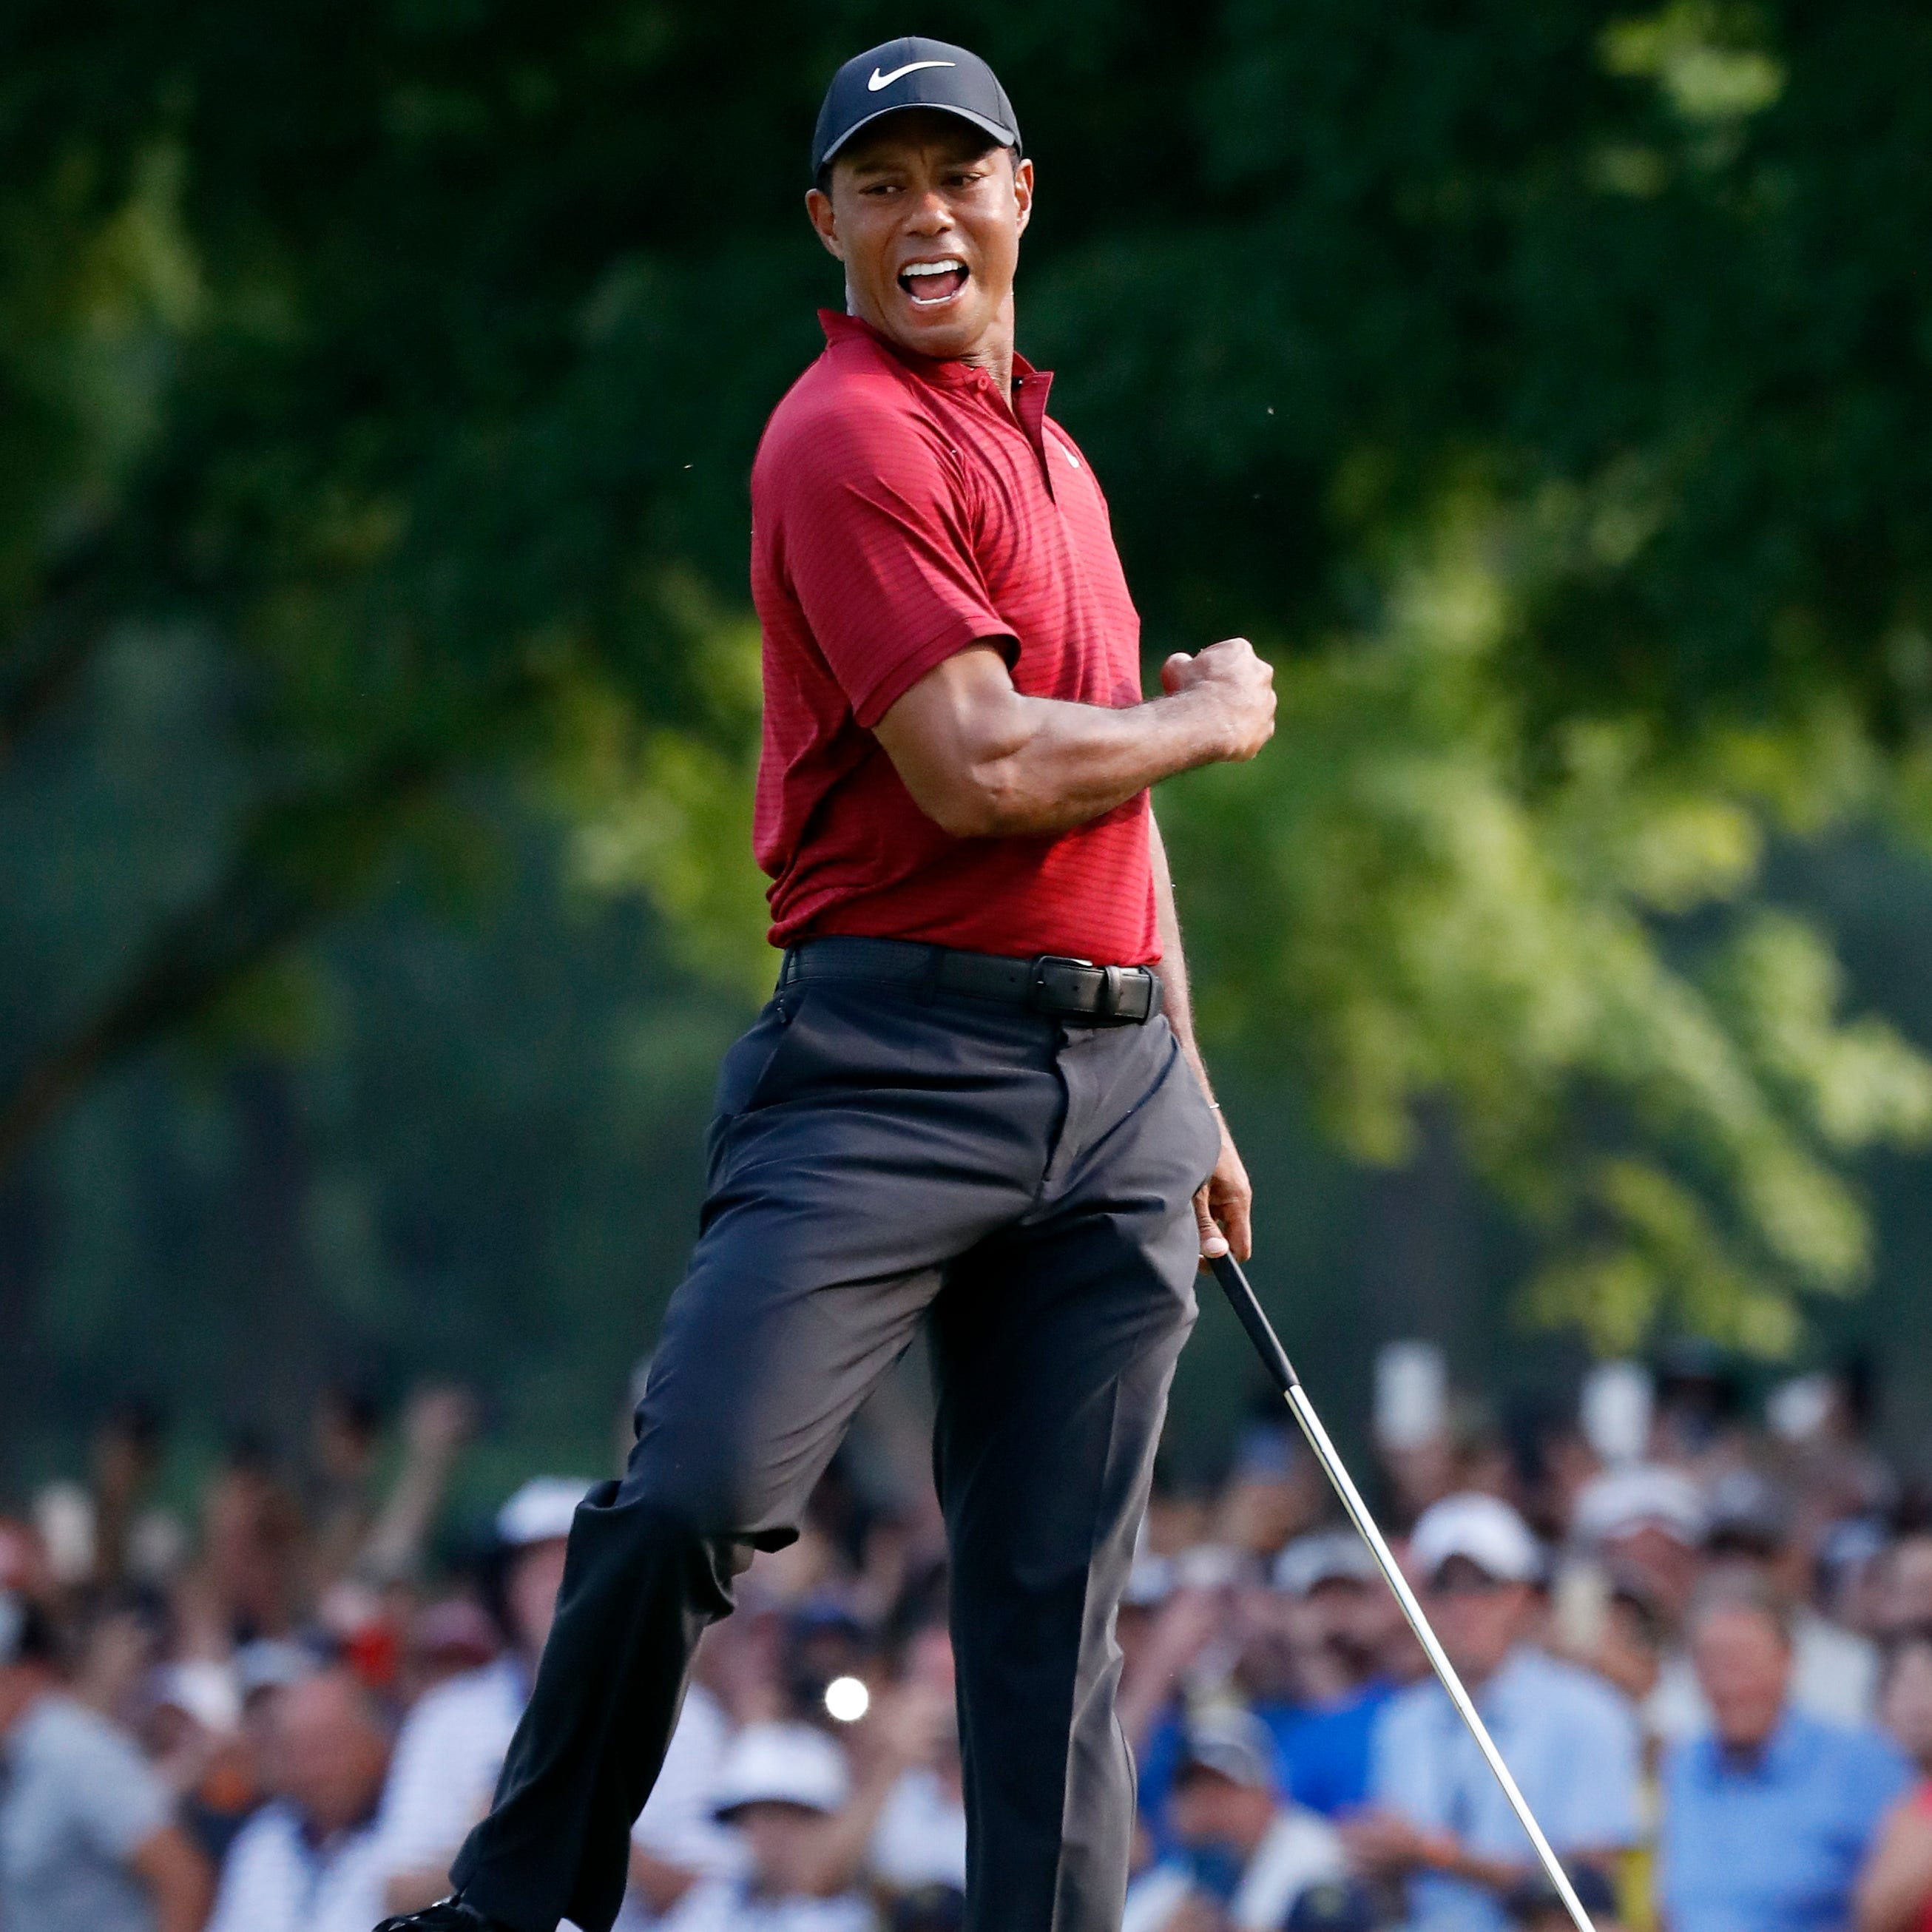 Tiger Woods celebrates after making a birdie putt on the 18th green during the final round of the PGA Championship golf tournament at Bellerive Country Club, Sunday, Aug. 12, 2018, in St. Louis. (AP Photo/Brynn Anderson)